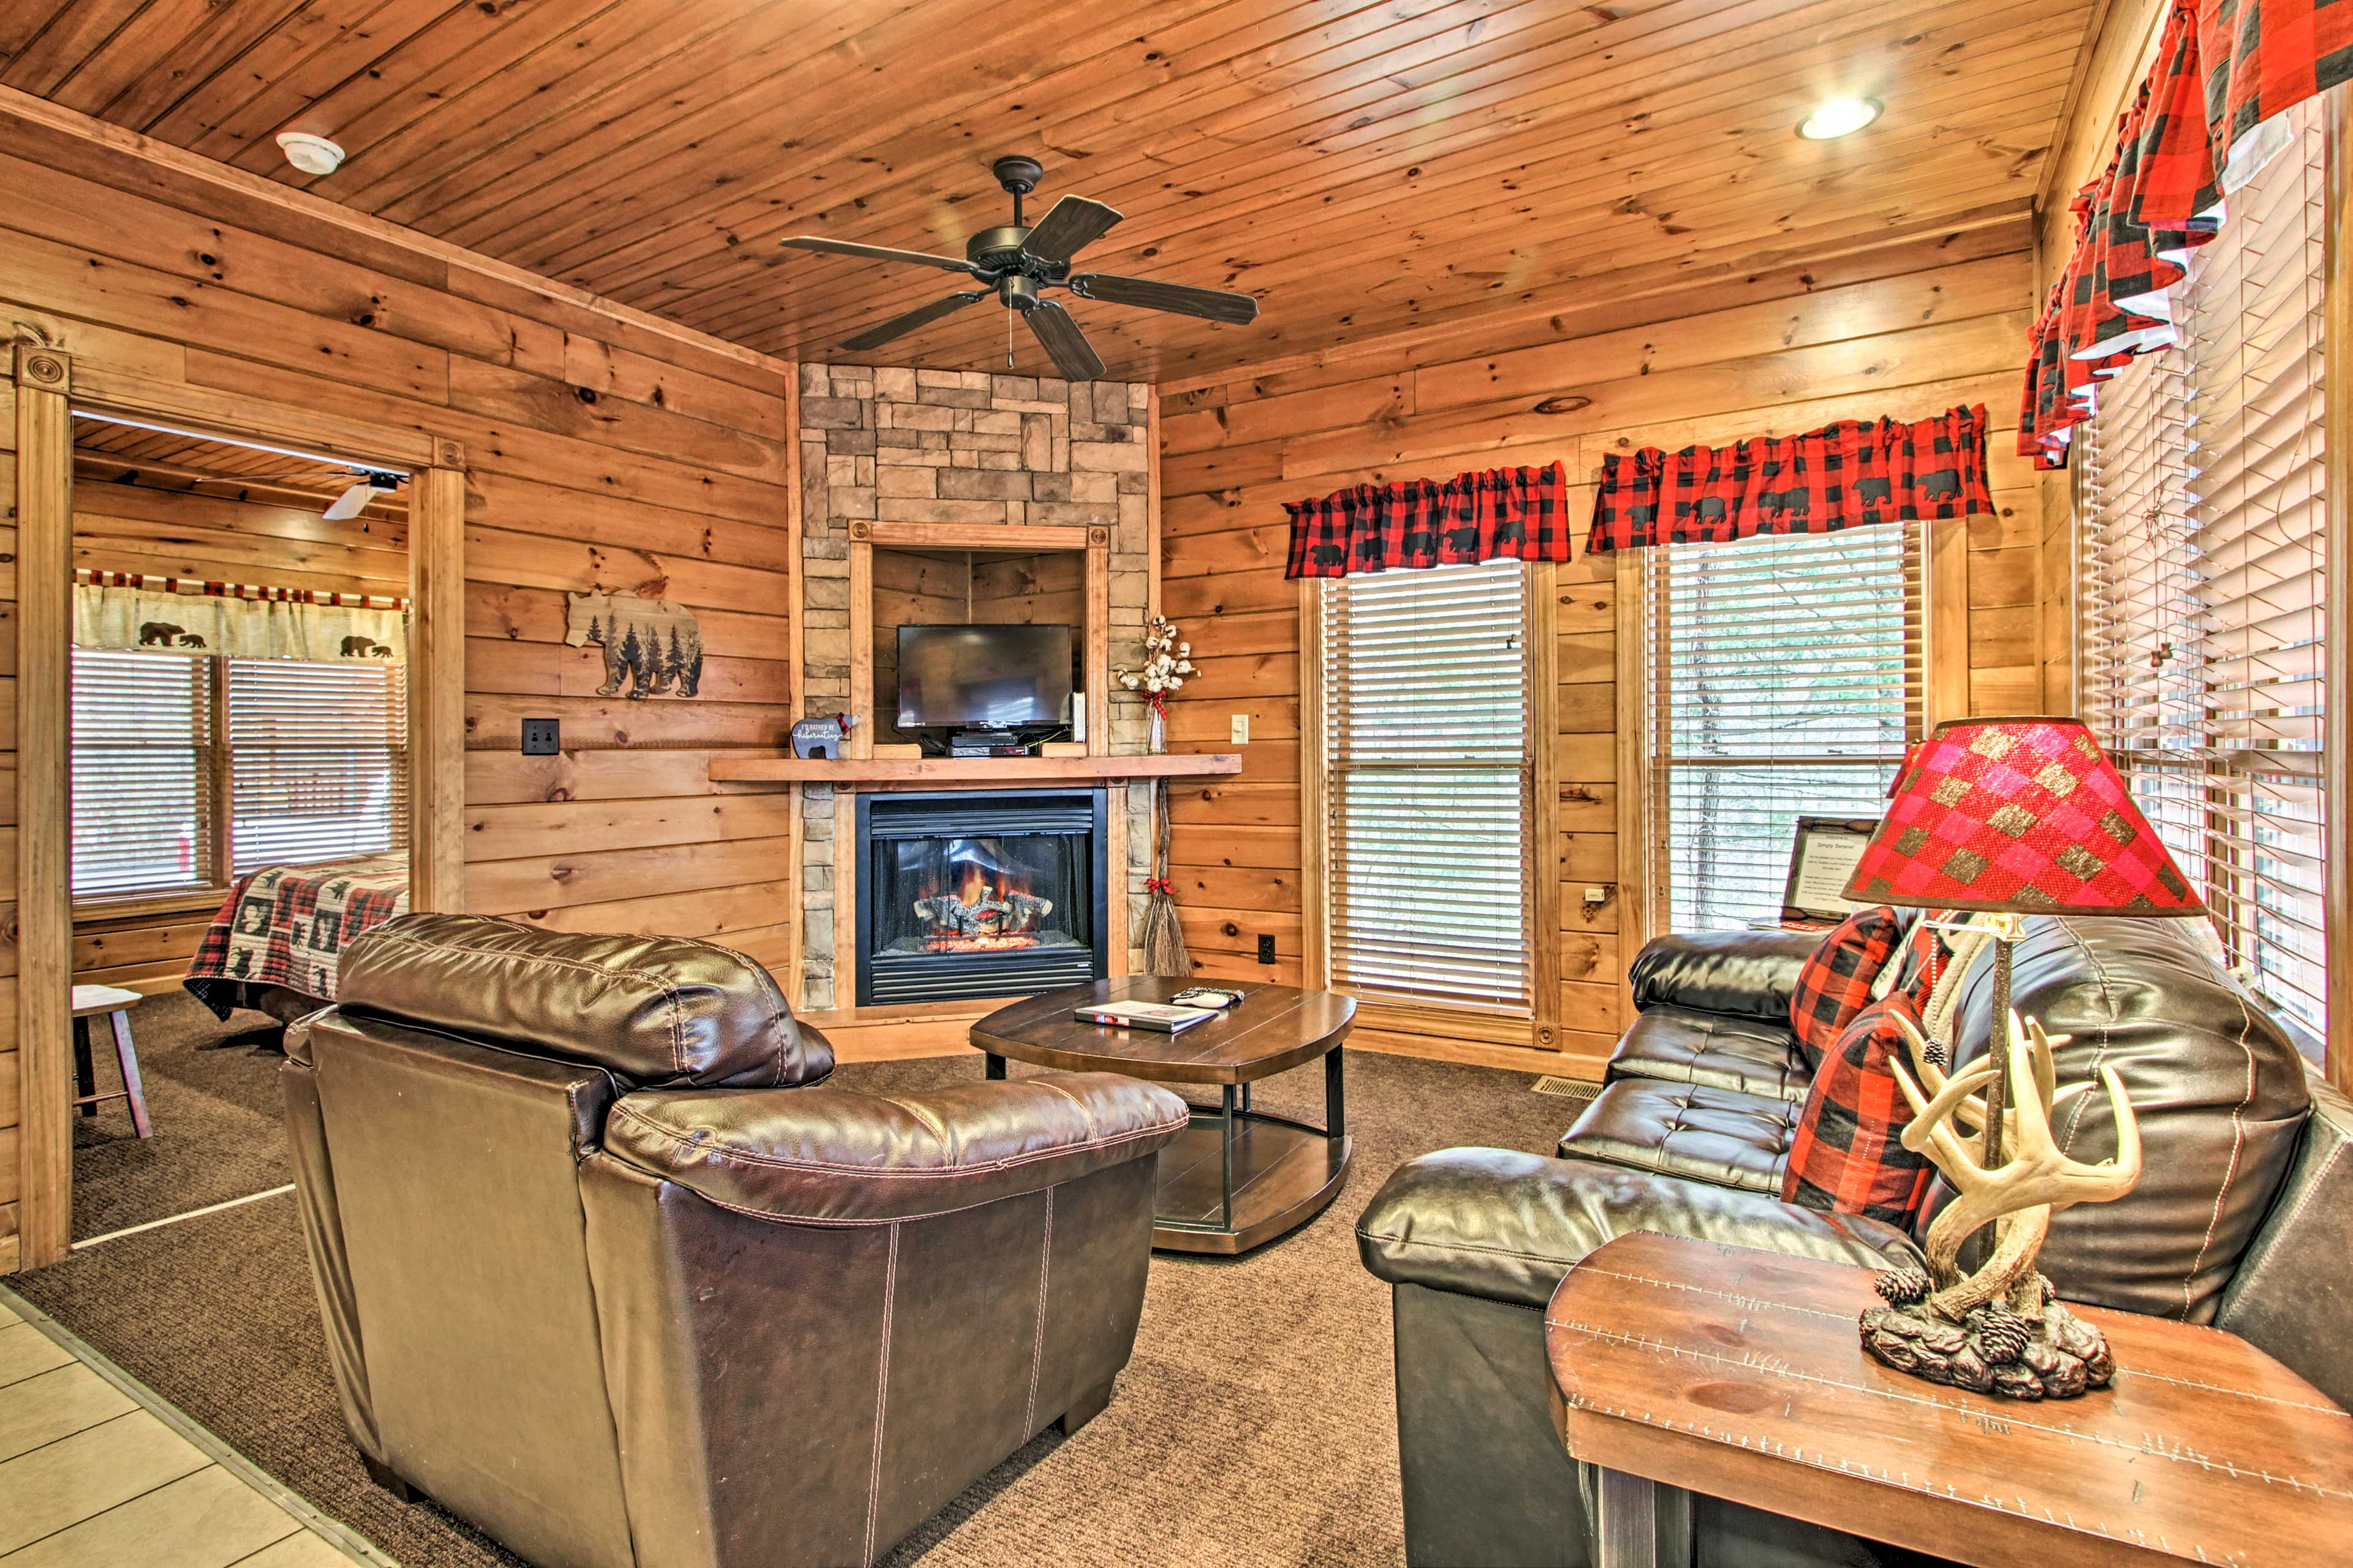 Watch the flat-screen cable TV next to the electric fireplace.